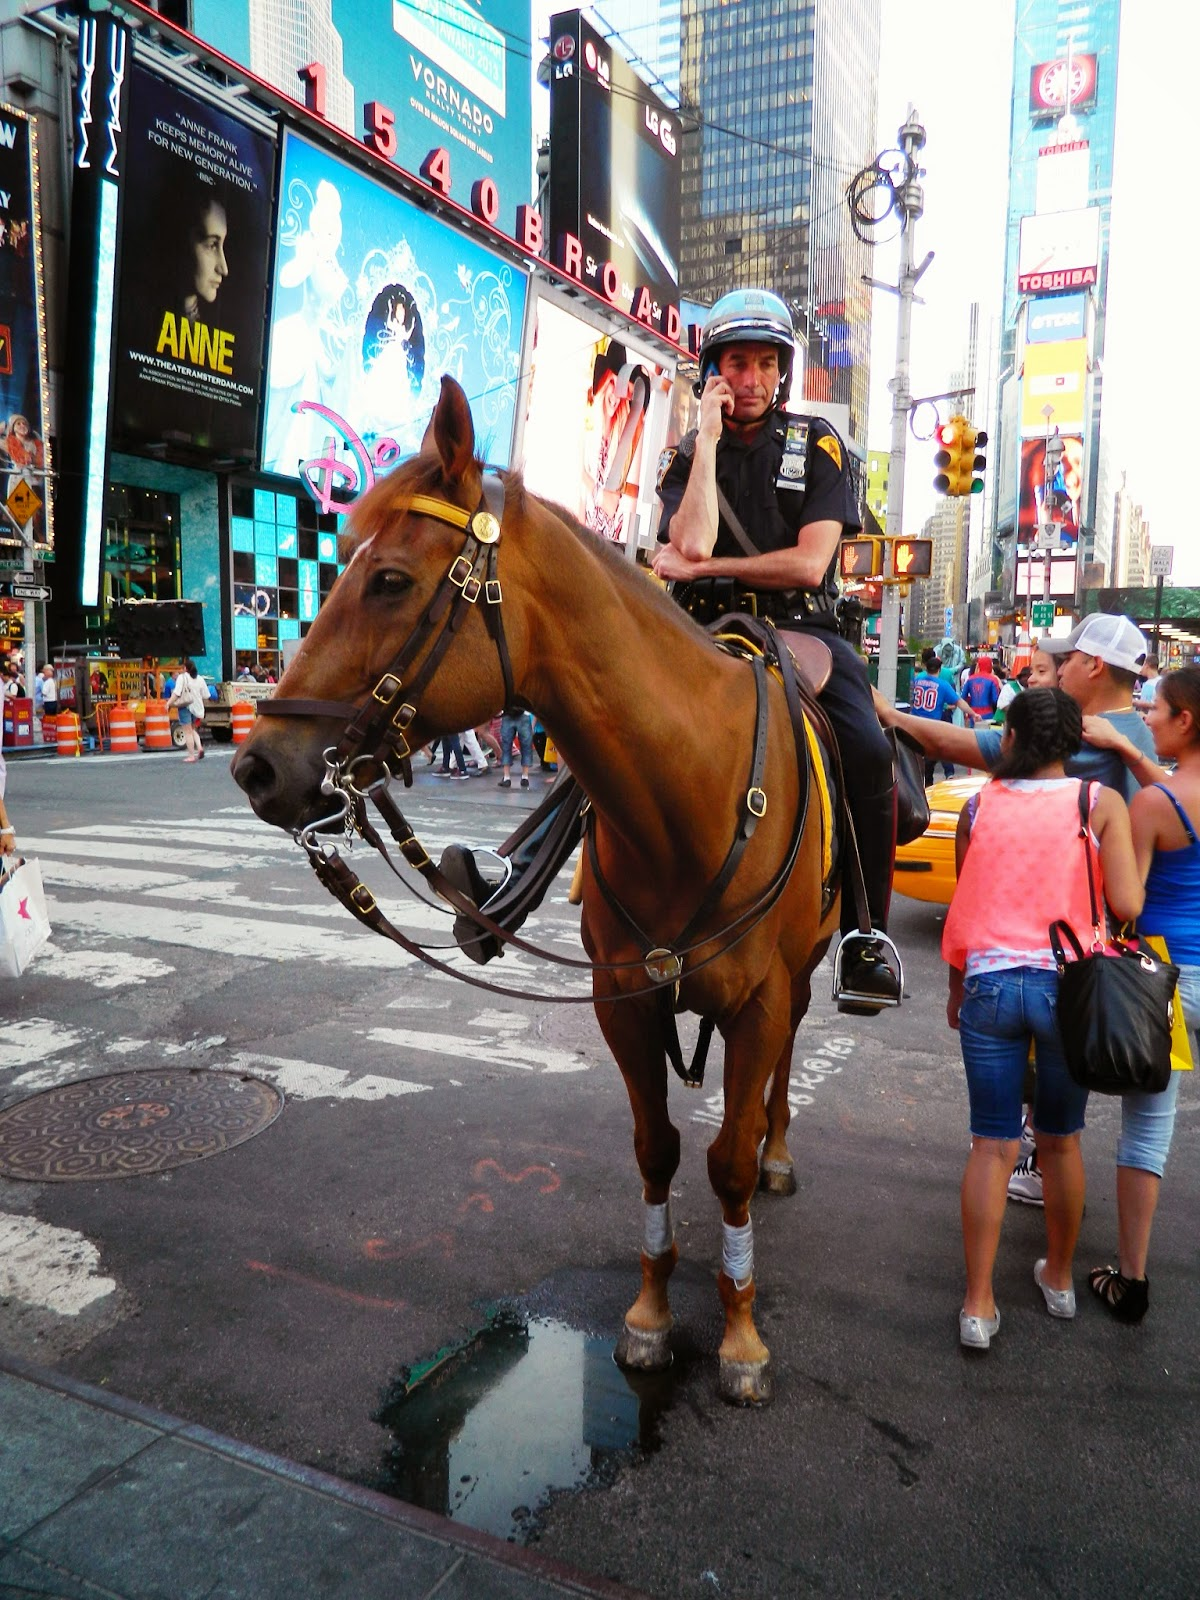 new york city times square police man horse petting busy cute